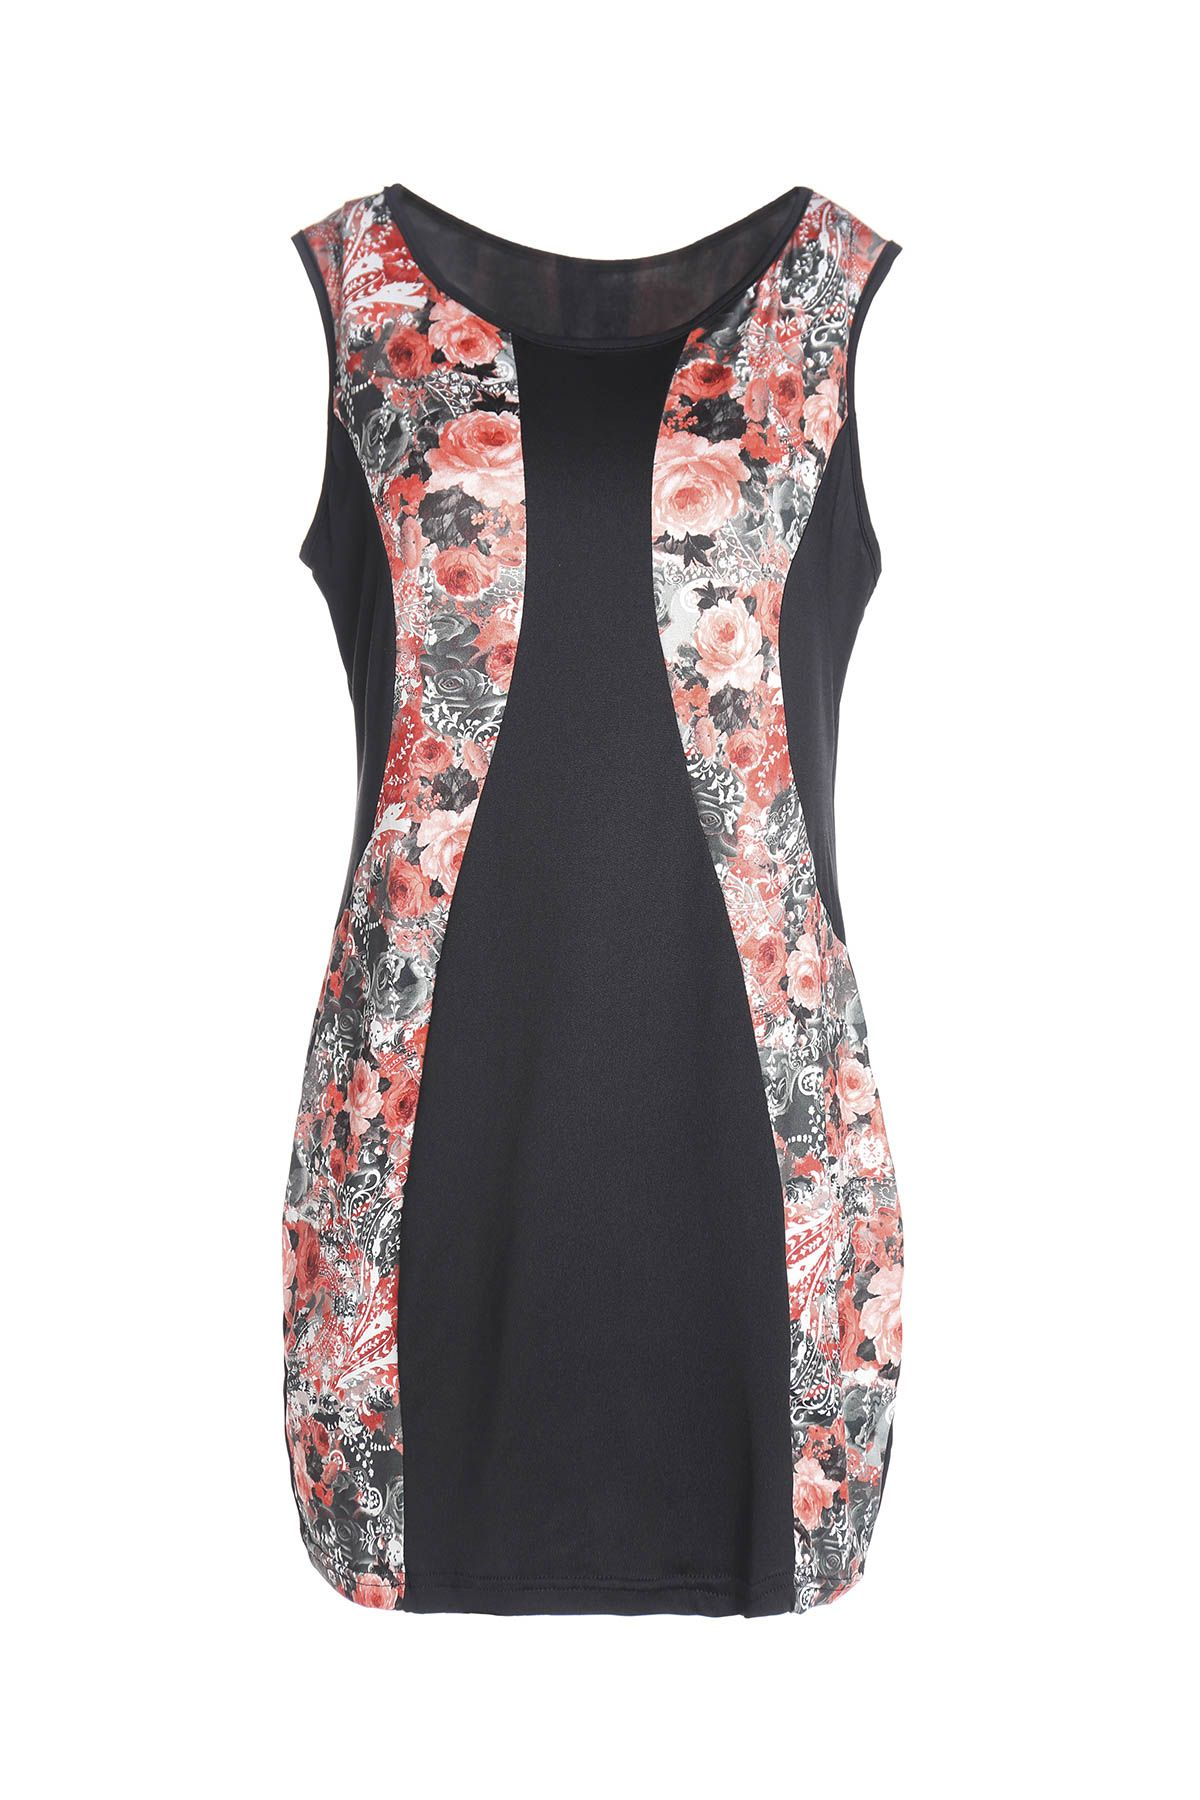 Charming Red Floral Printed Sleeveless Bodycon Mini Dress